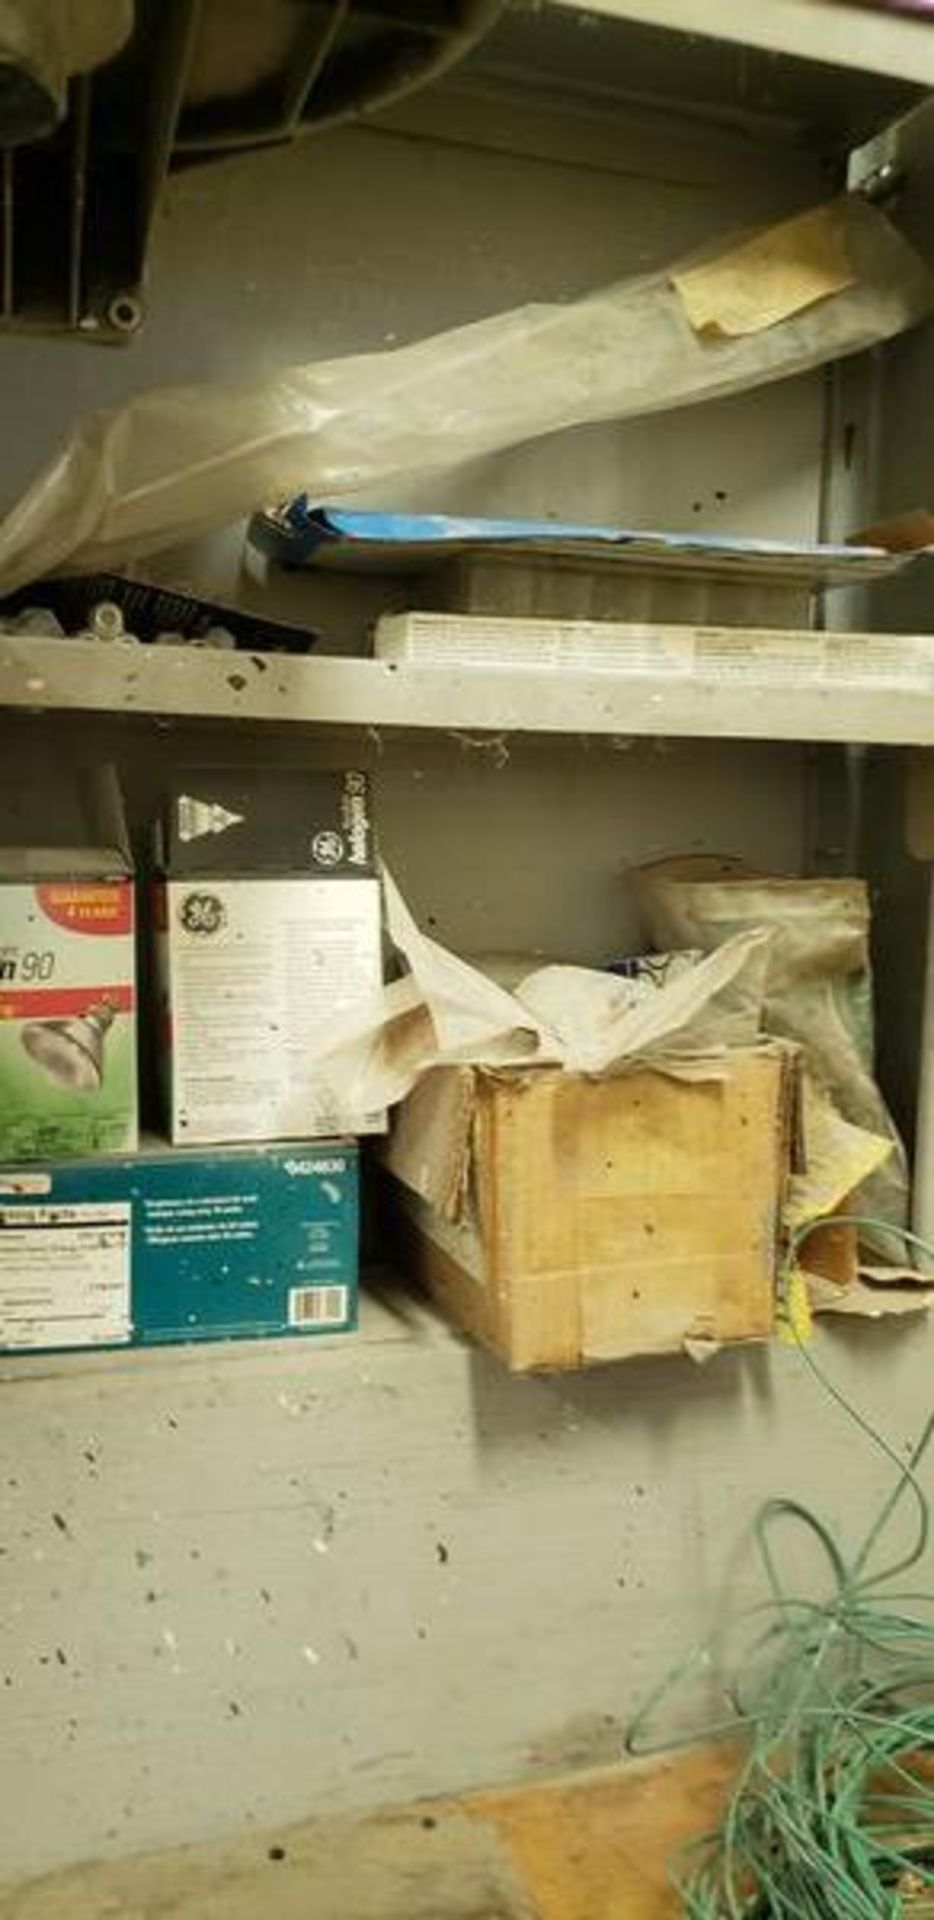 LOT OF PAINTING ITEMS ON LEFT TABLE, TOP AND BACK SHELF (TAGGED SPRAY GUNS AND OTHER TAGGED ITEMS AR - Image 10 of 12